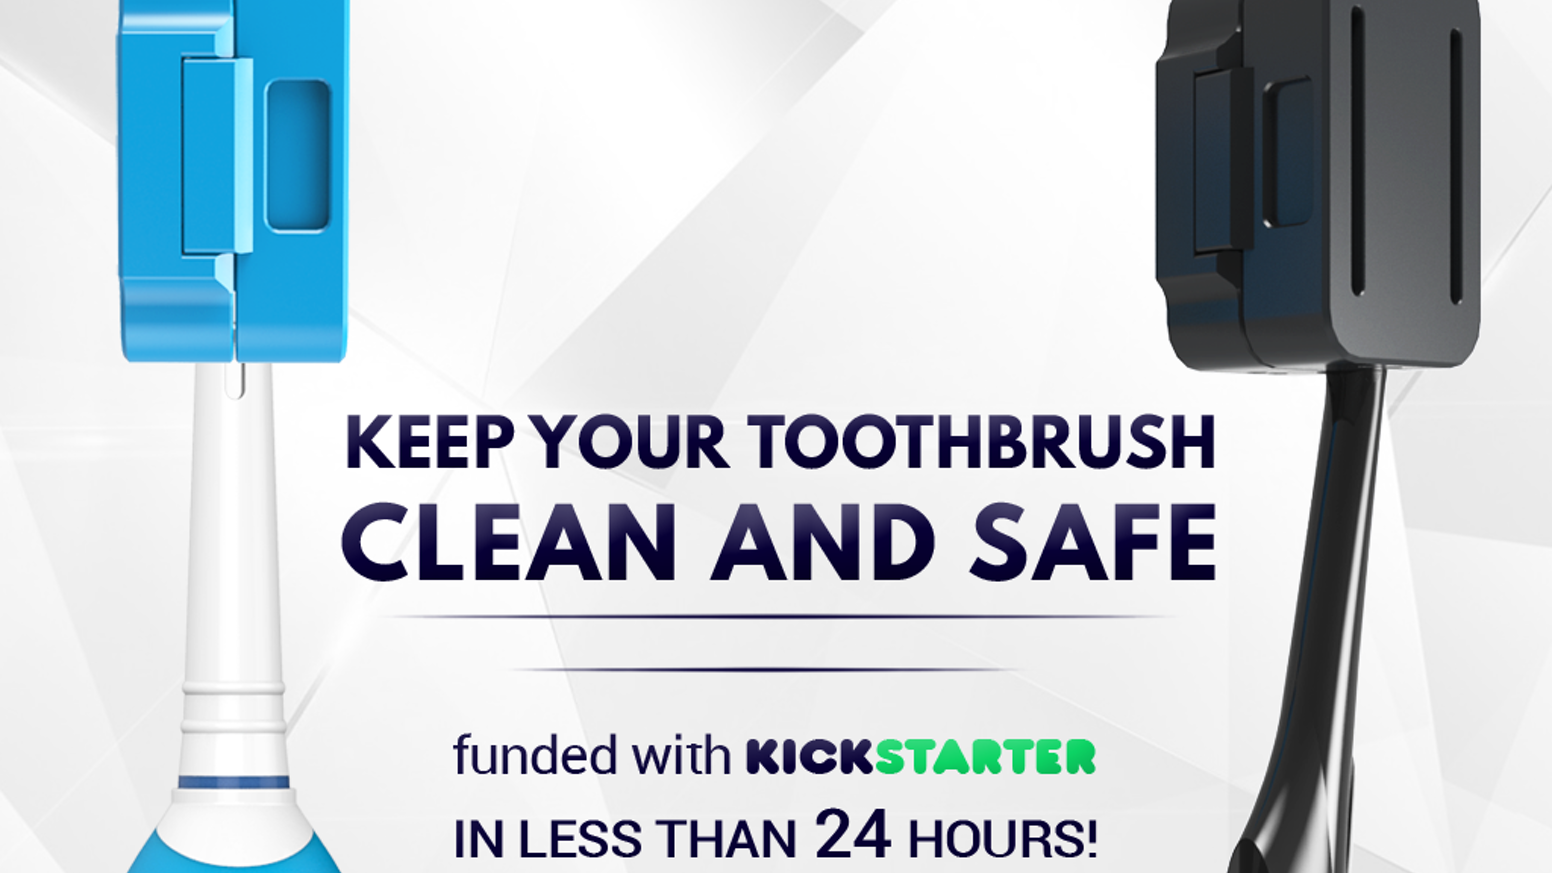 Silver-ionic technology ANTI-MICROBIAL toothbrush case. Protects toothbrush  against germs, poop and any other external threat.